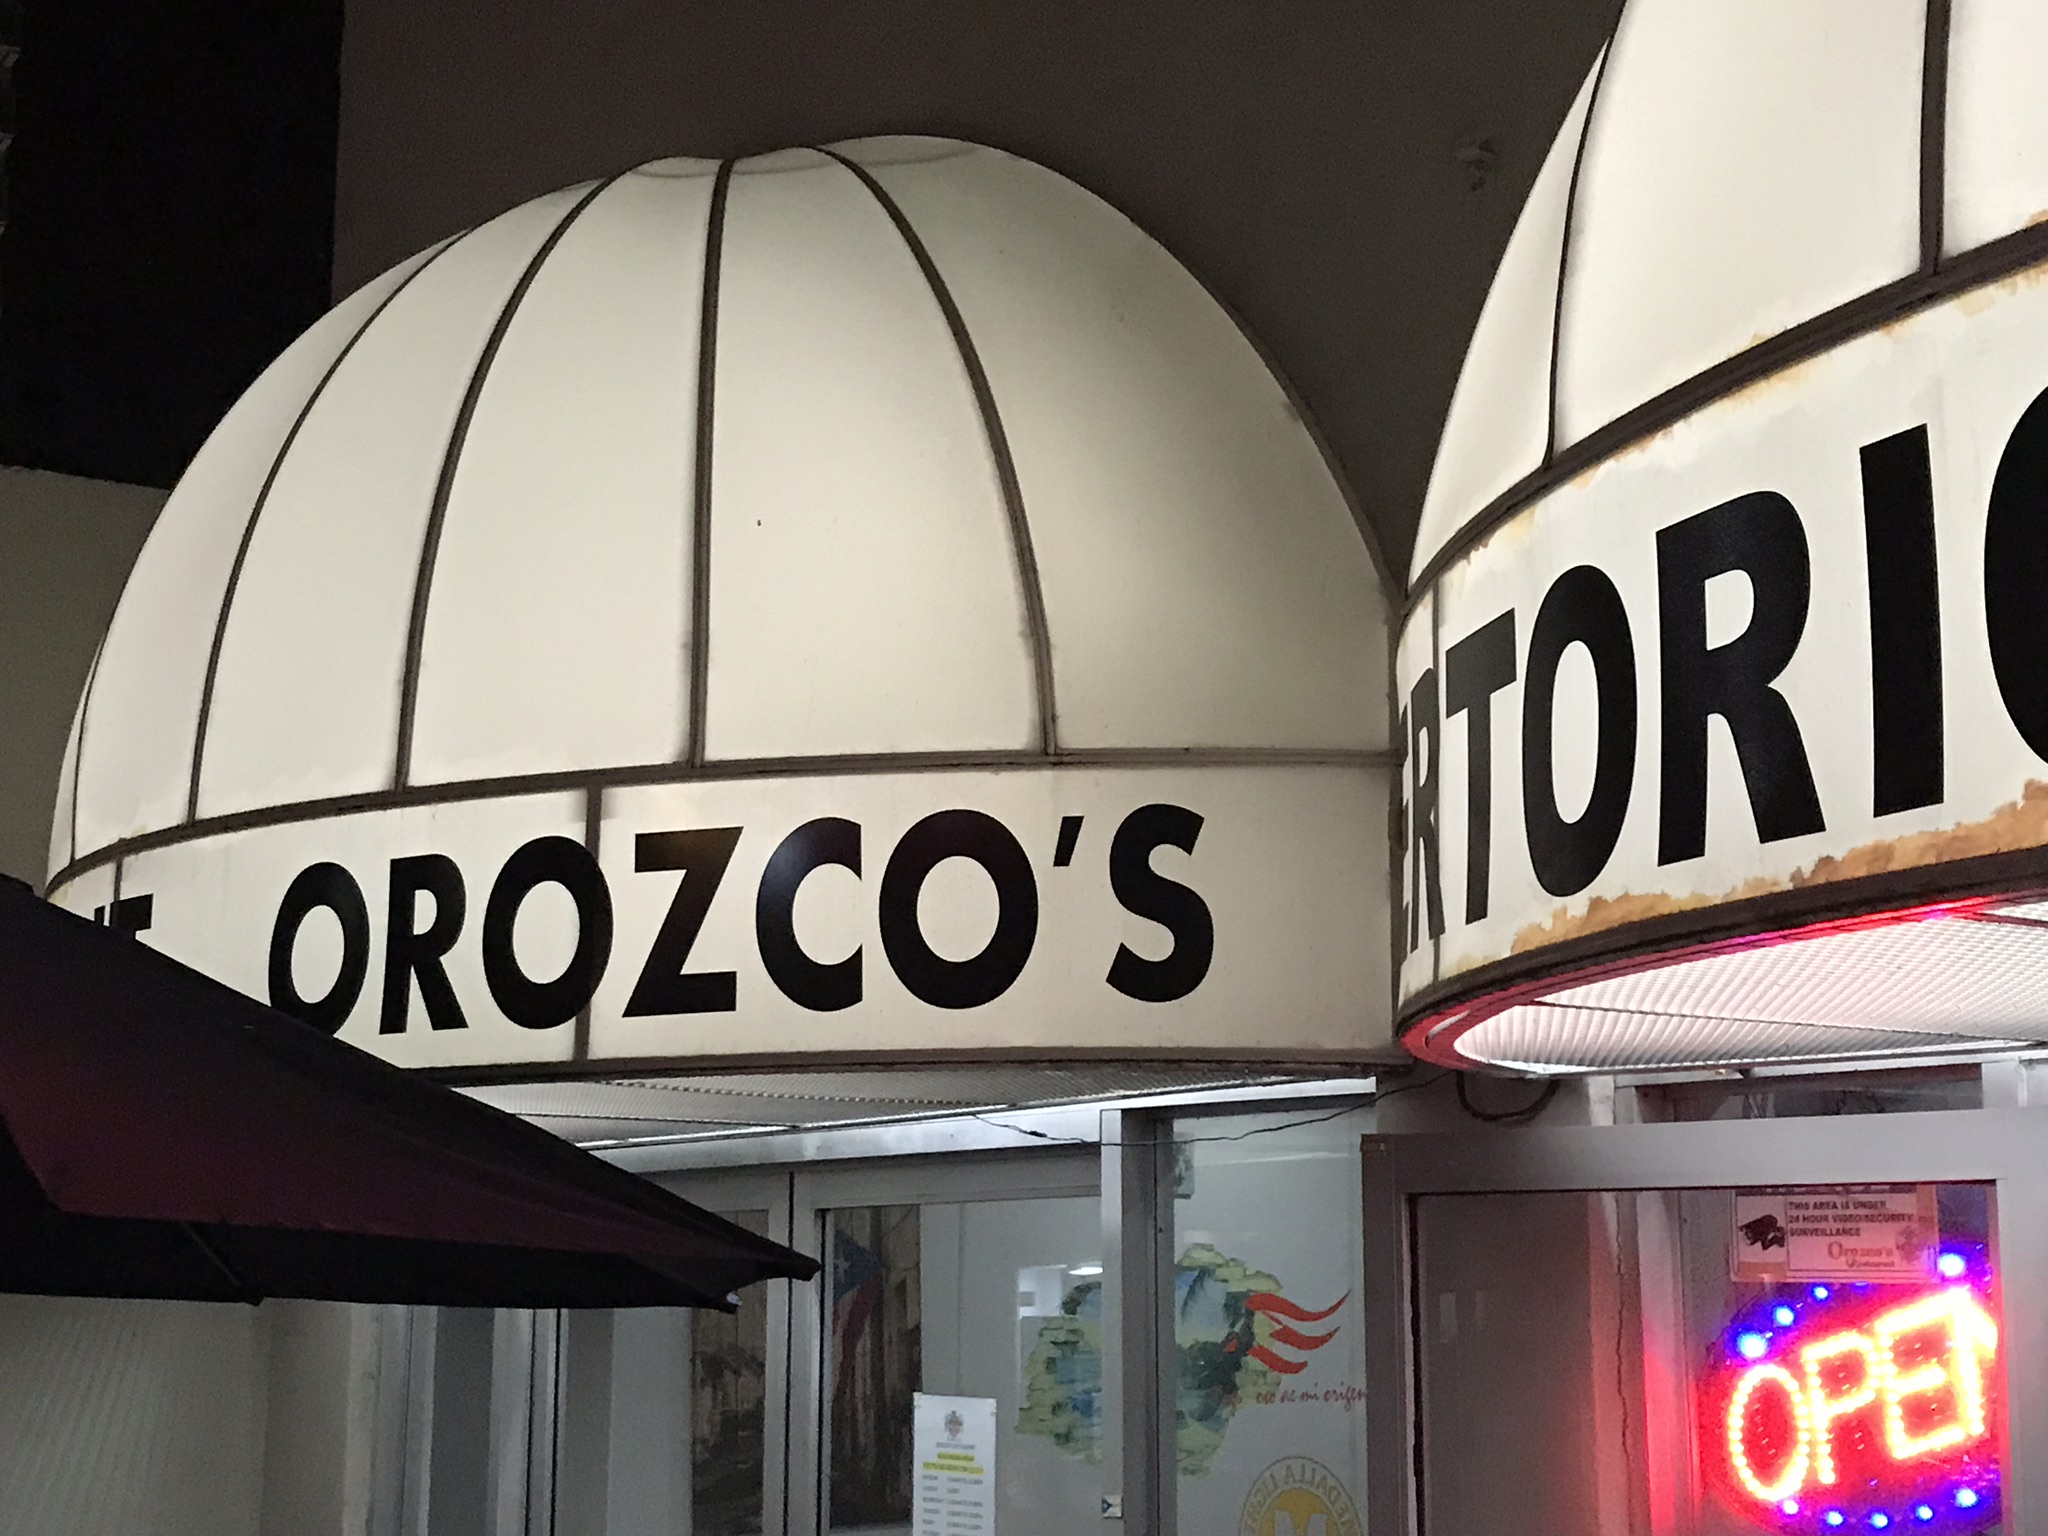 A Puerto Rican restaurant with my LAST NAME!!! <br> Orozco's Restaurant <br> 1126 Ashford Ave <br> San Juan, 00907, Puerto Rico